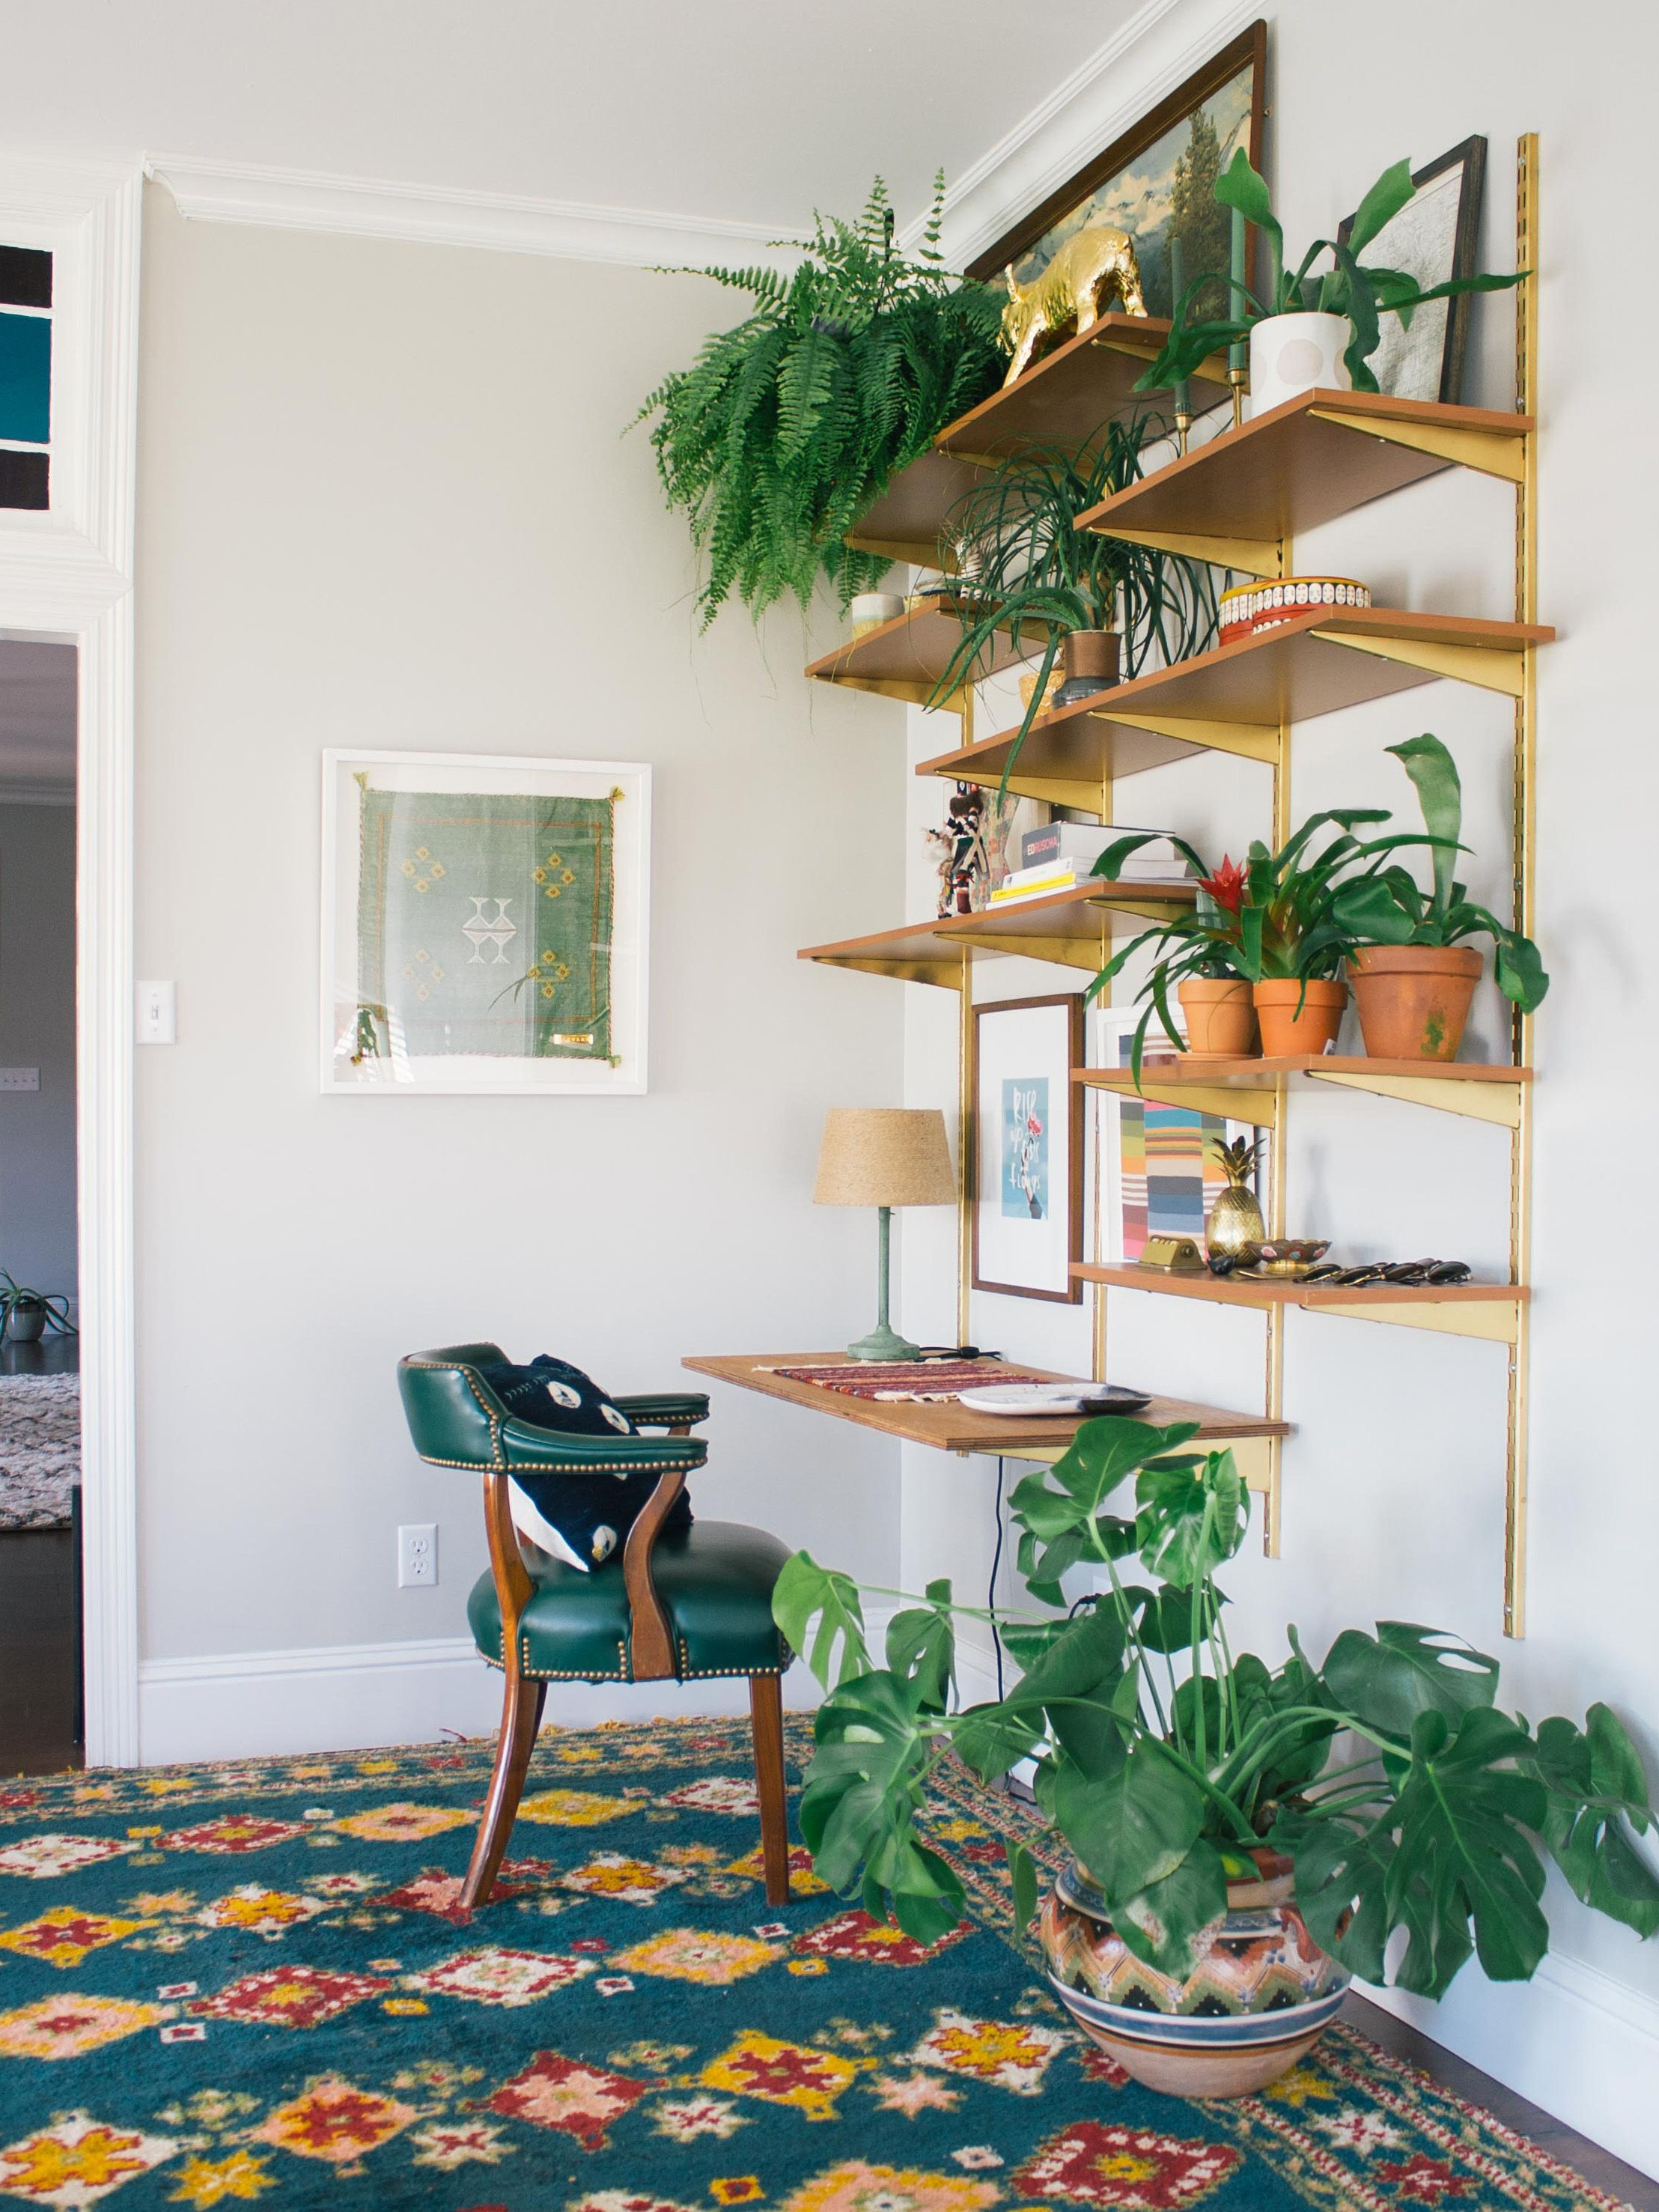 Plant Shelves For Walls 15 Gorgeous Ways To Decorate With Plants Wall Shelving